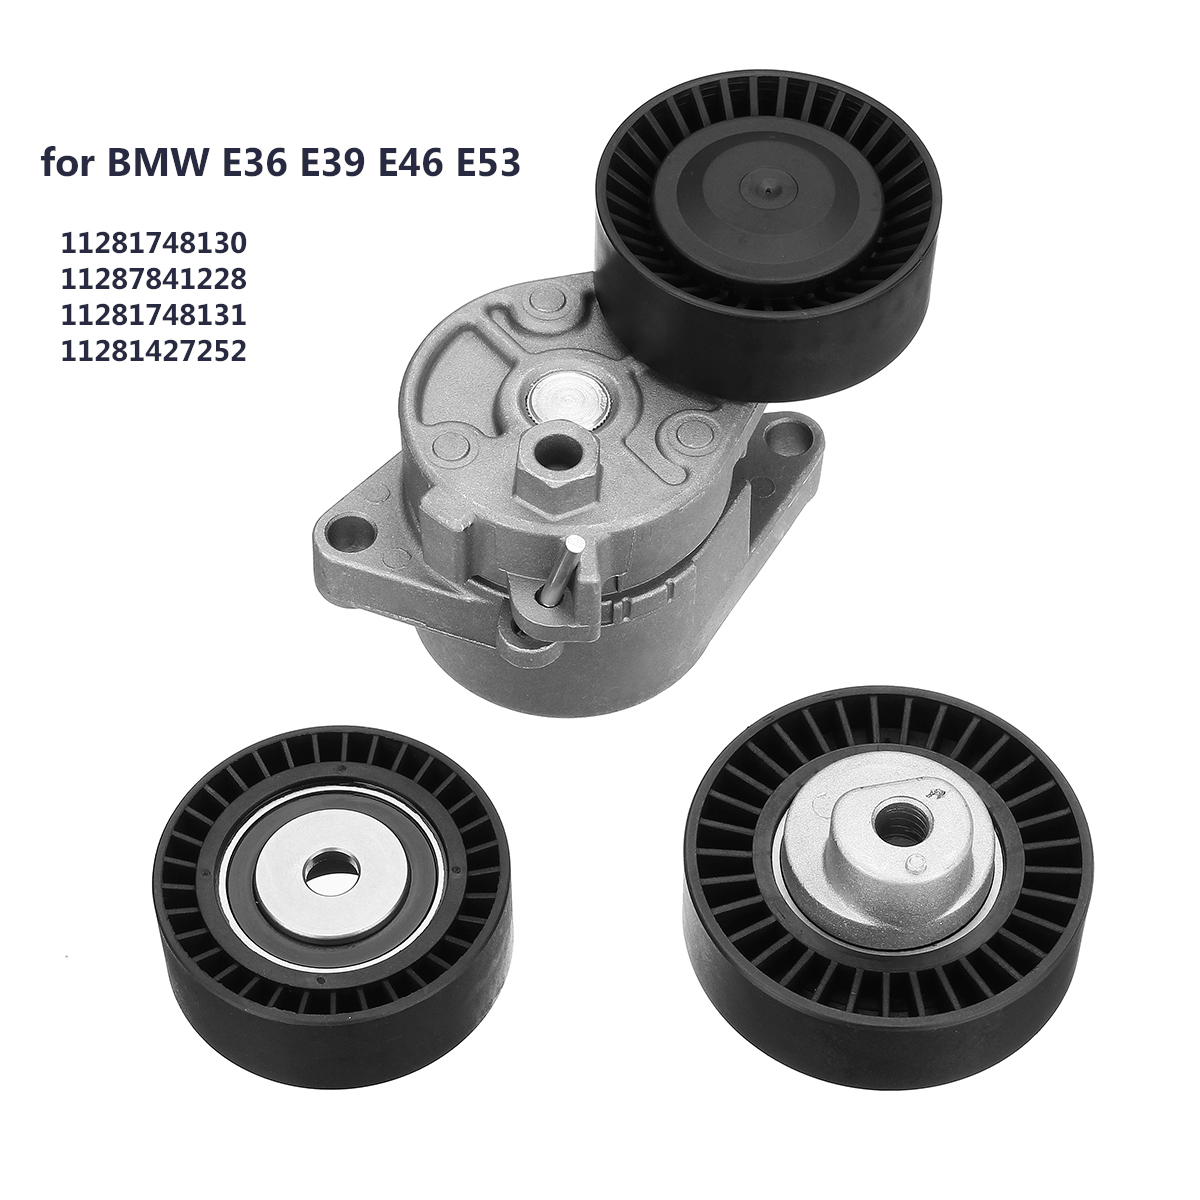 Set of Belt Tensioner Idler Pulley Kit Replacement for BMW E36 E39 E46 E53 11287841228